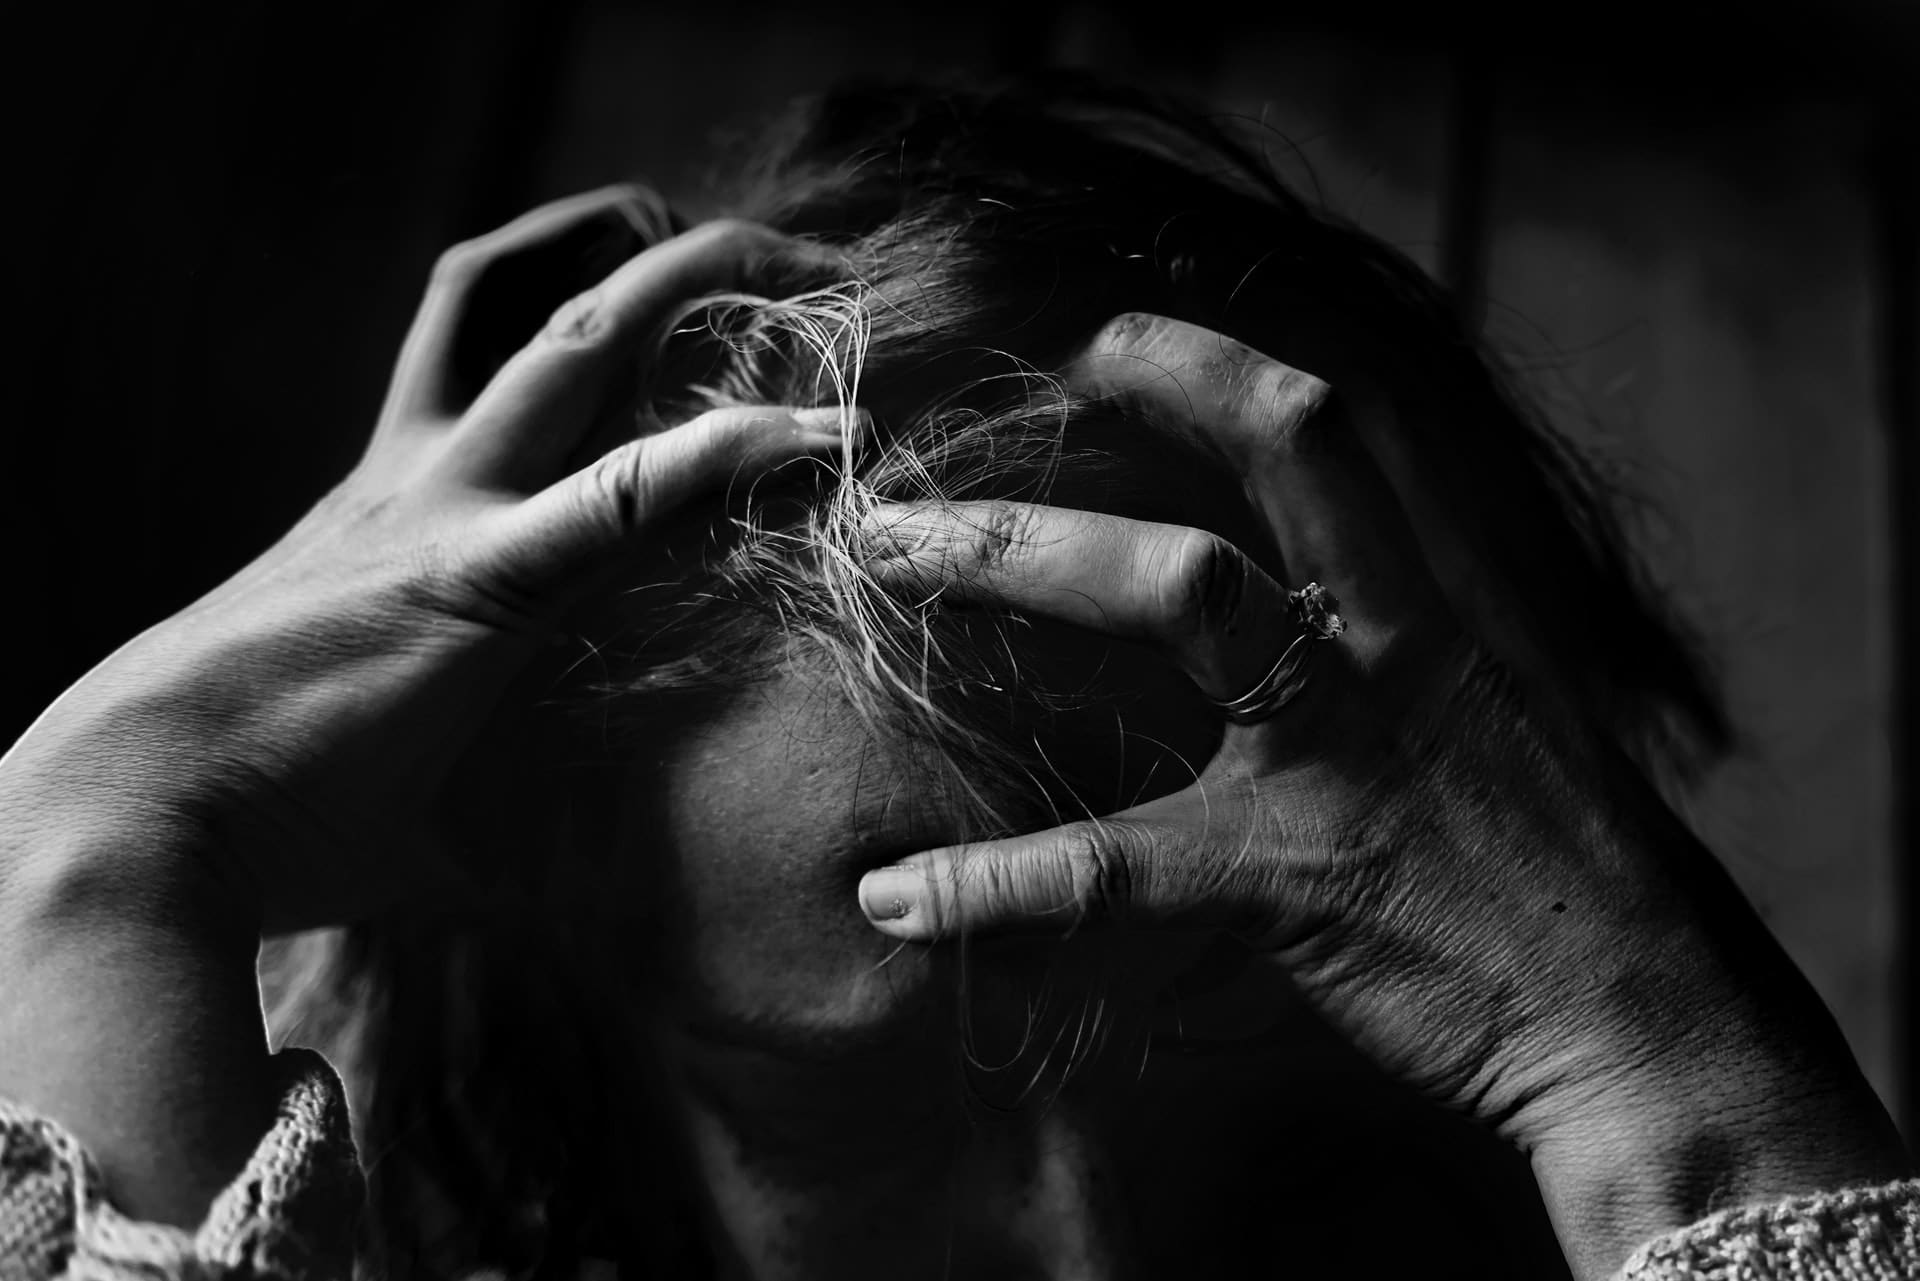 a woman grabs her head because she has lost mental capacity